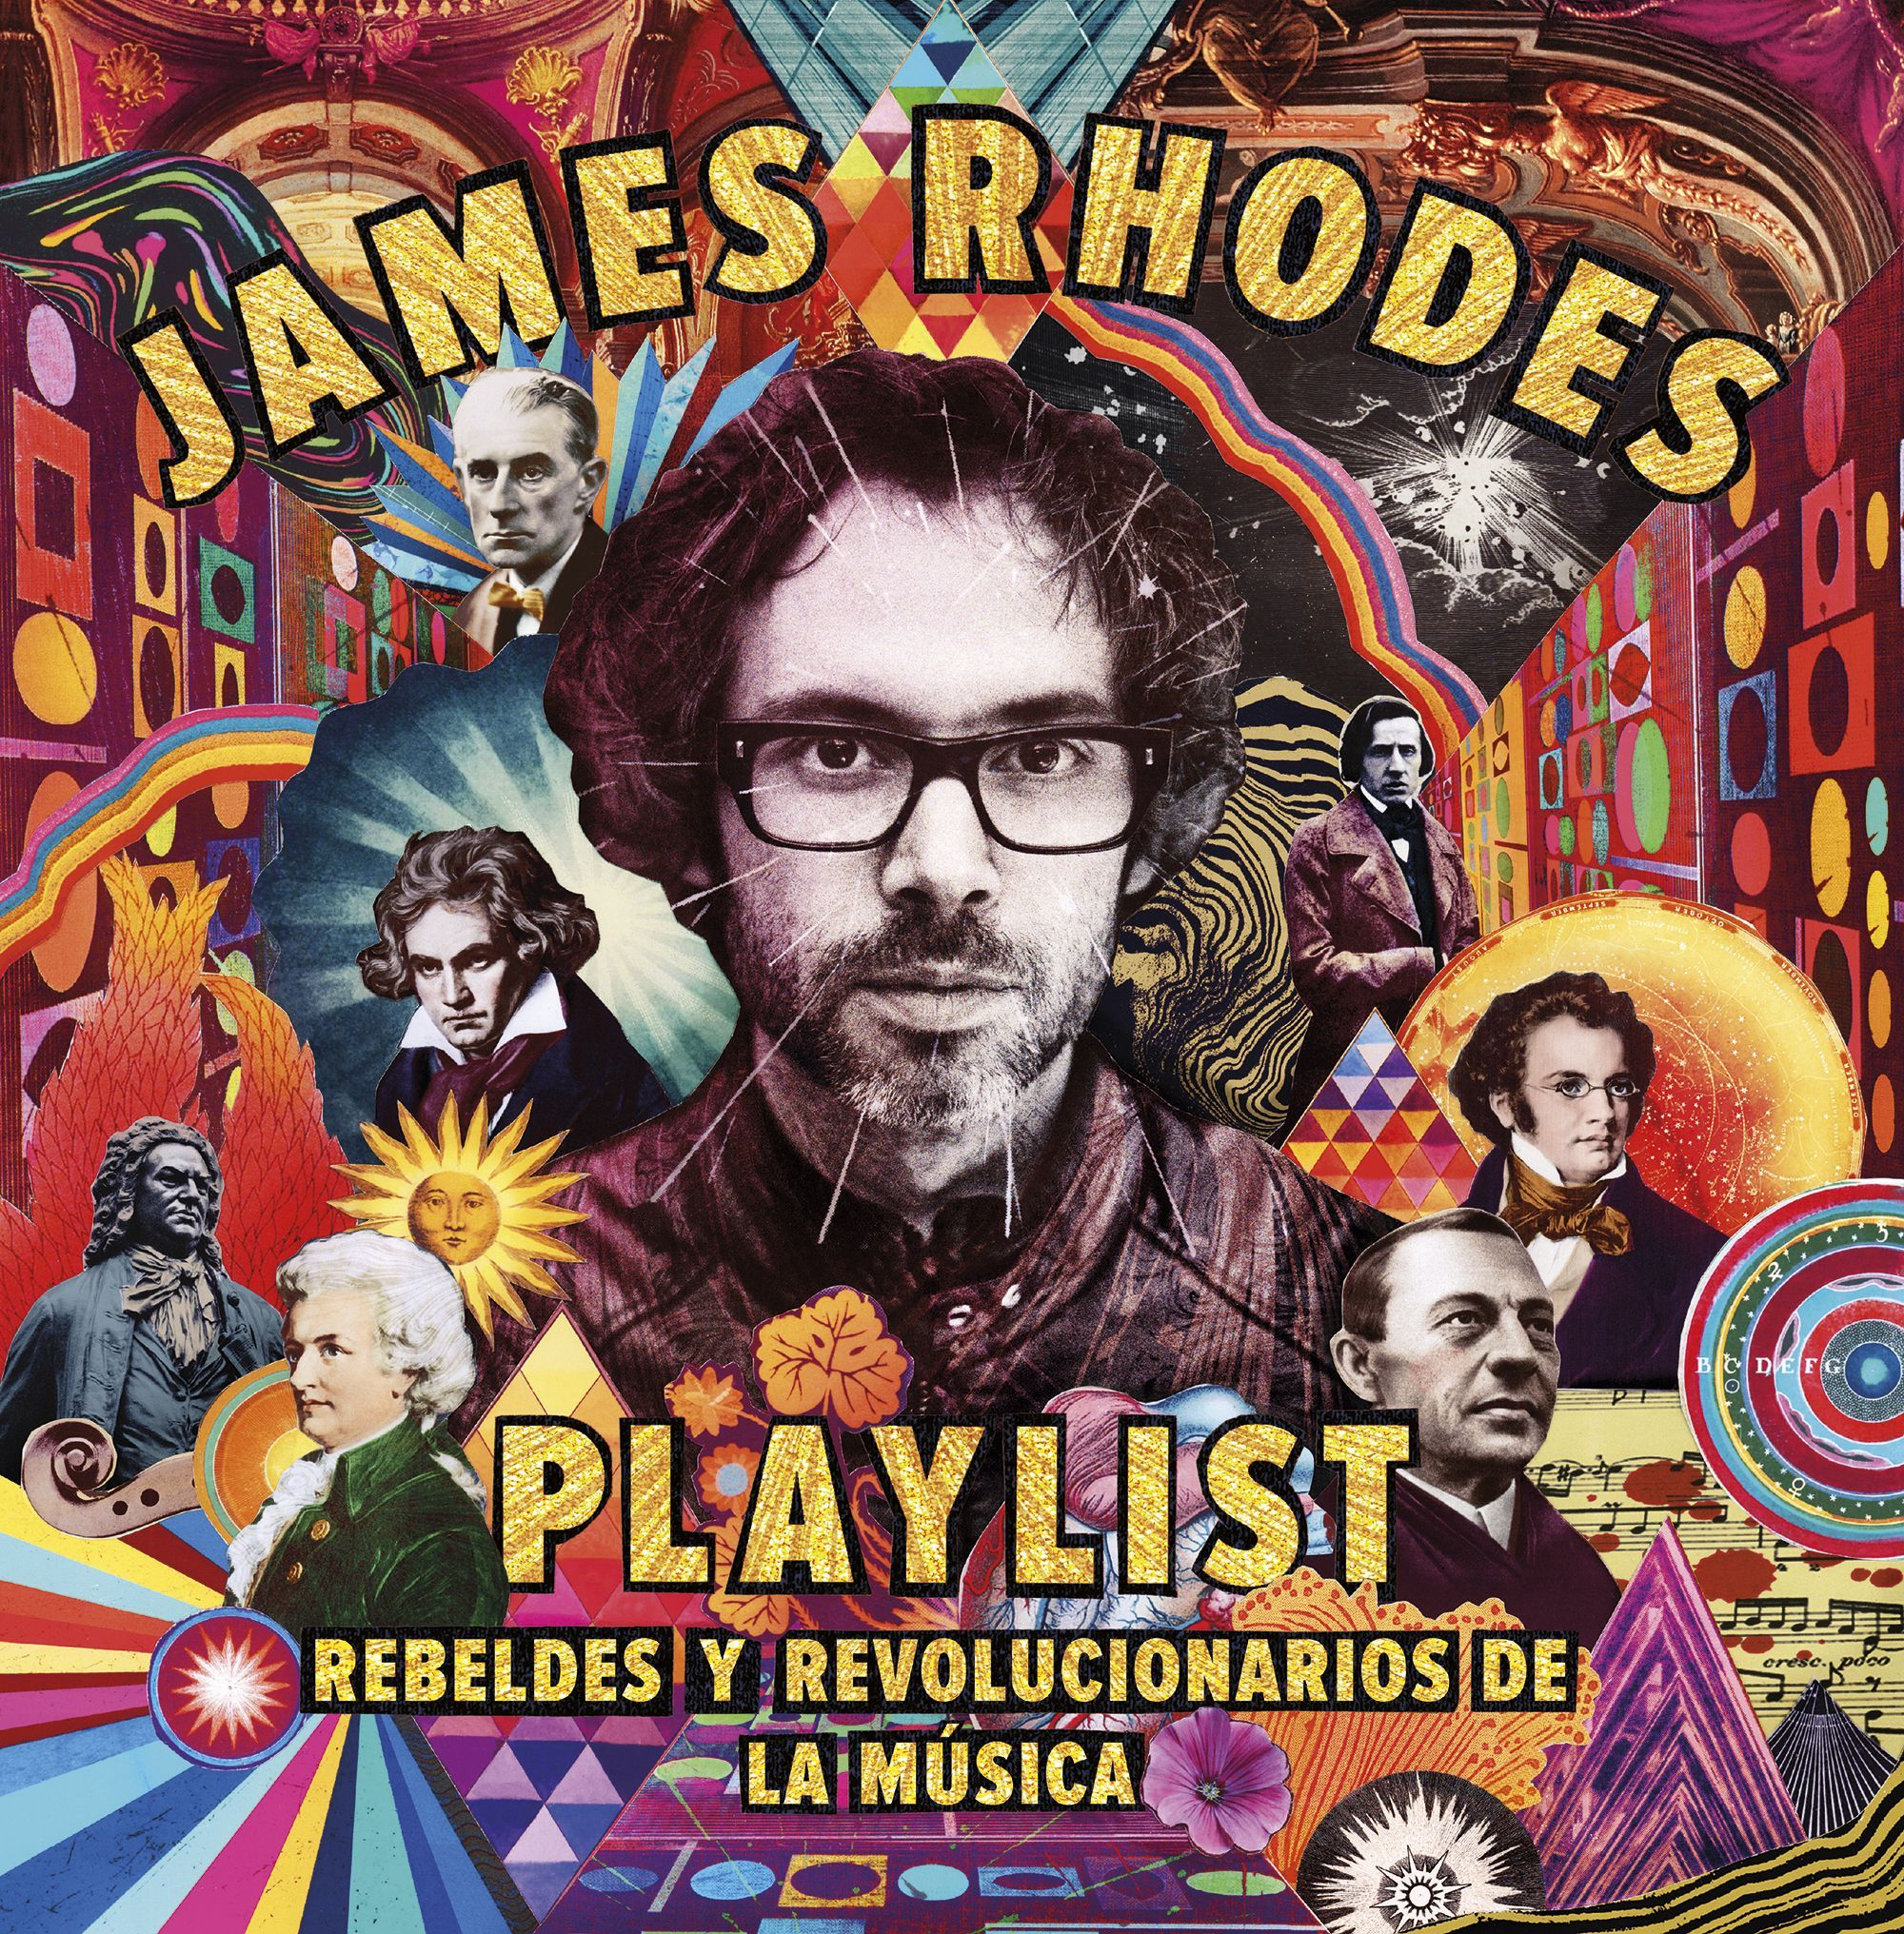 PLAYLIST. REBELDES Y REVOLUCIONARIOS DE LA MÚSICA. LA PLAYLIST DE JAMES RHODES